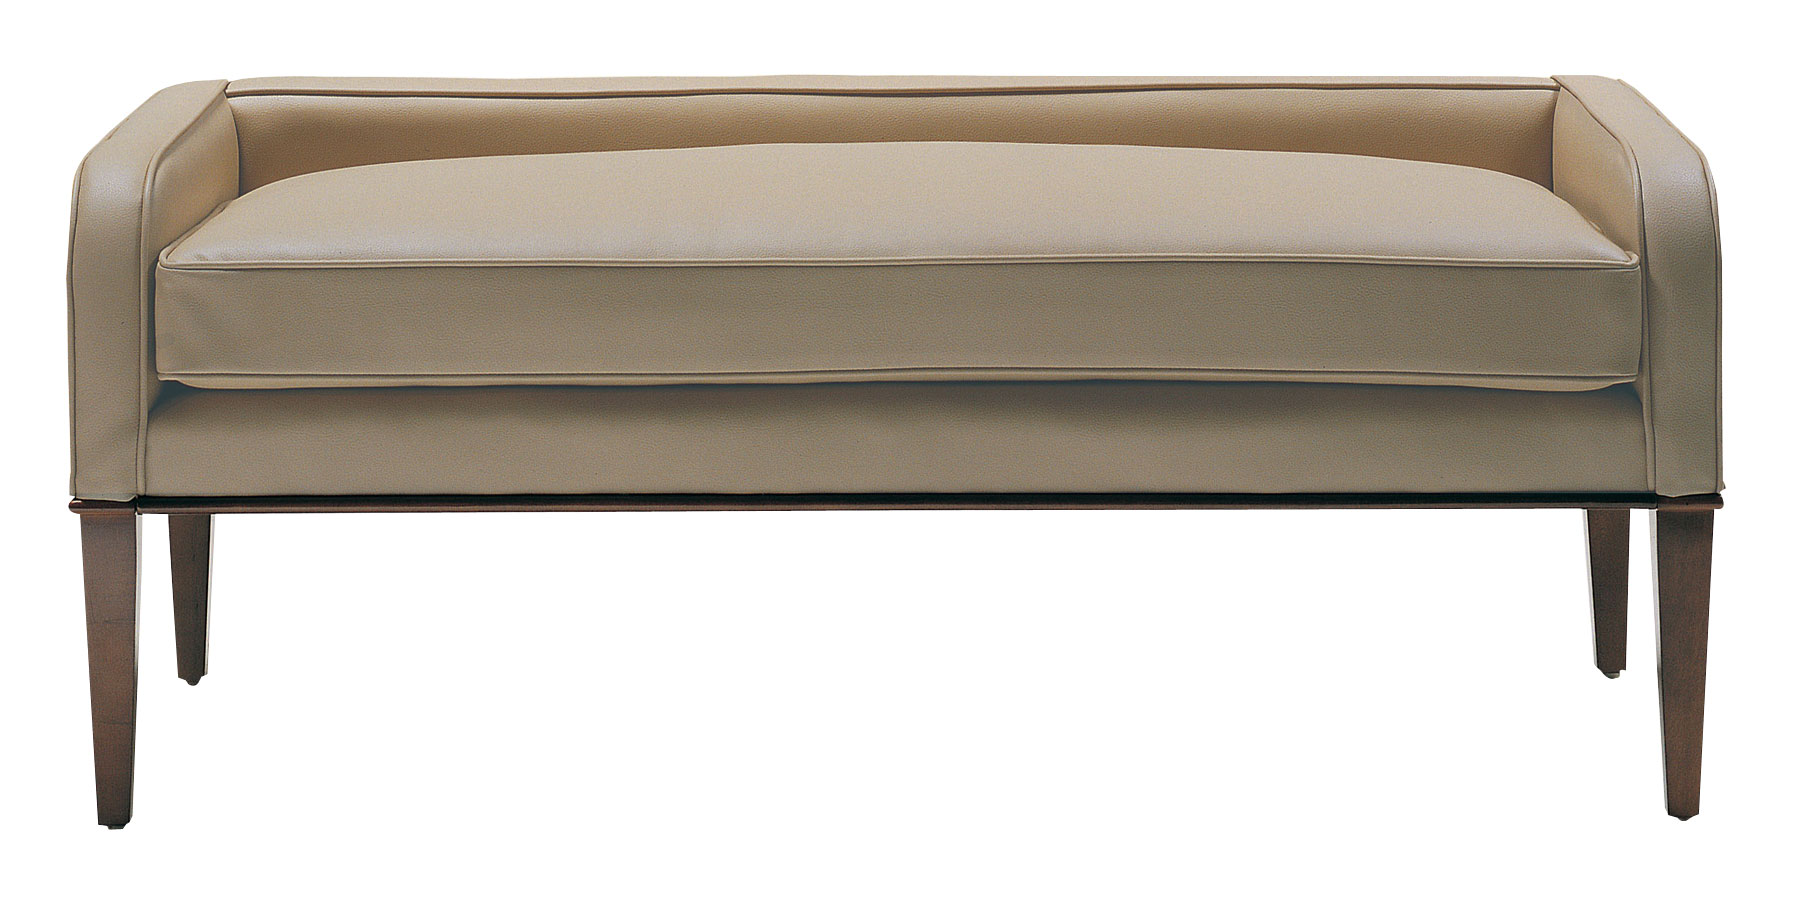 "Leander ""Designer Style"" Leather Bench - Ottomans & Benches"